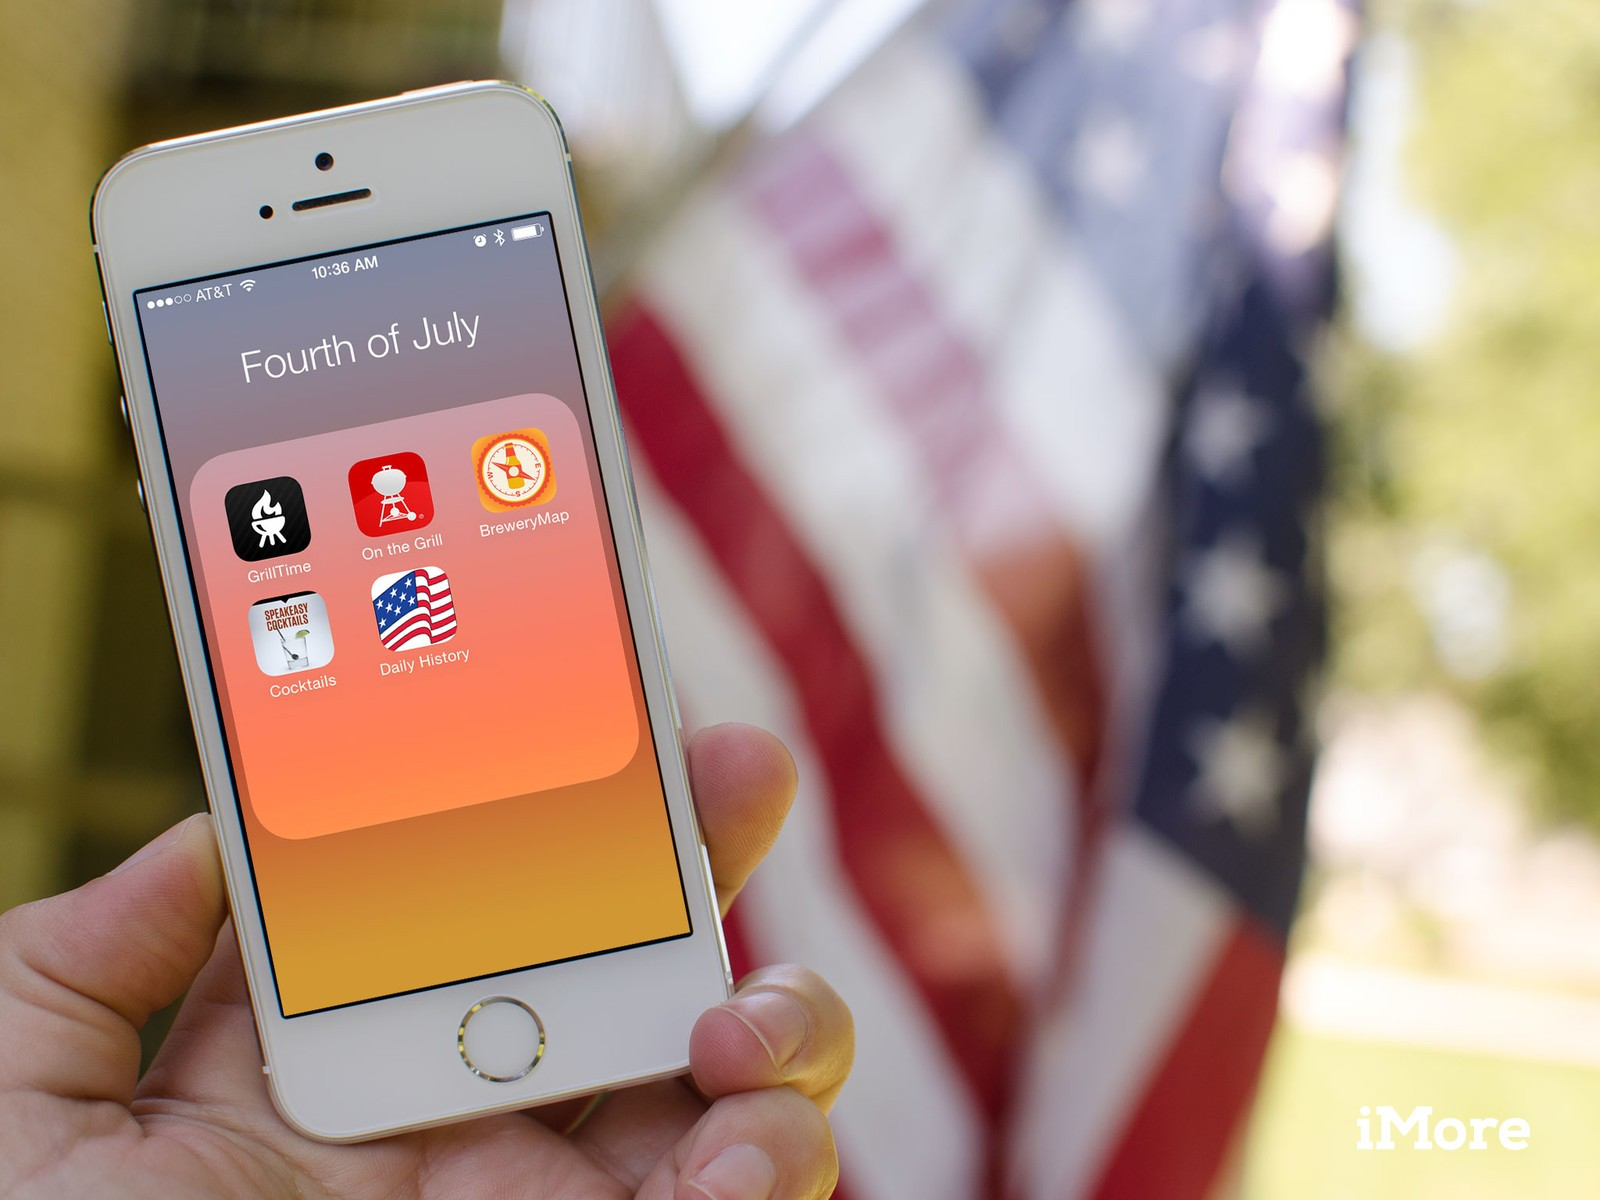 Best iPhone and iPad apps to celebrate the Fourth of July: GrillTime, BreweryMap, Speakeasy, and more!